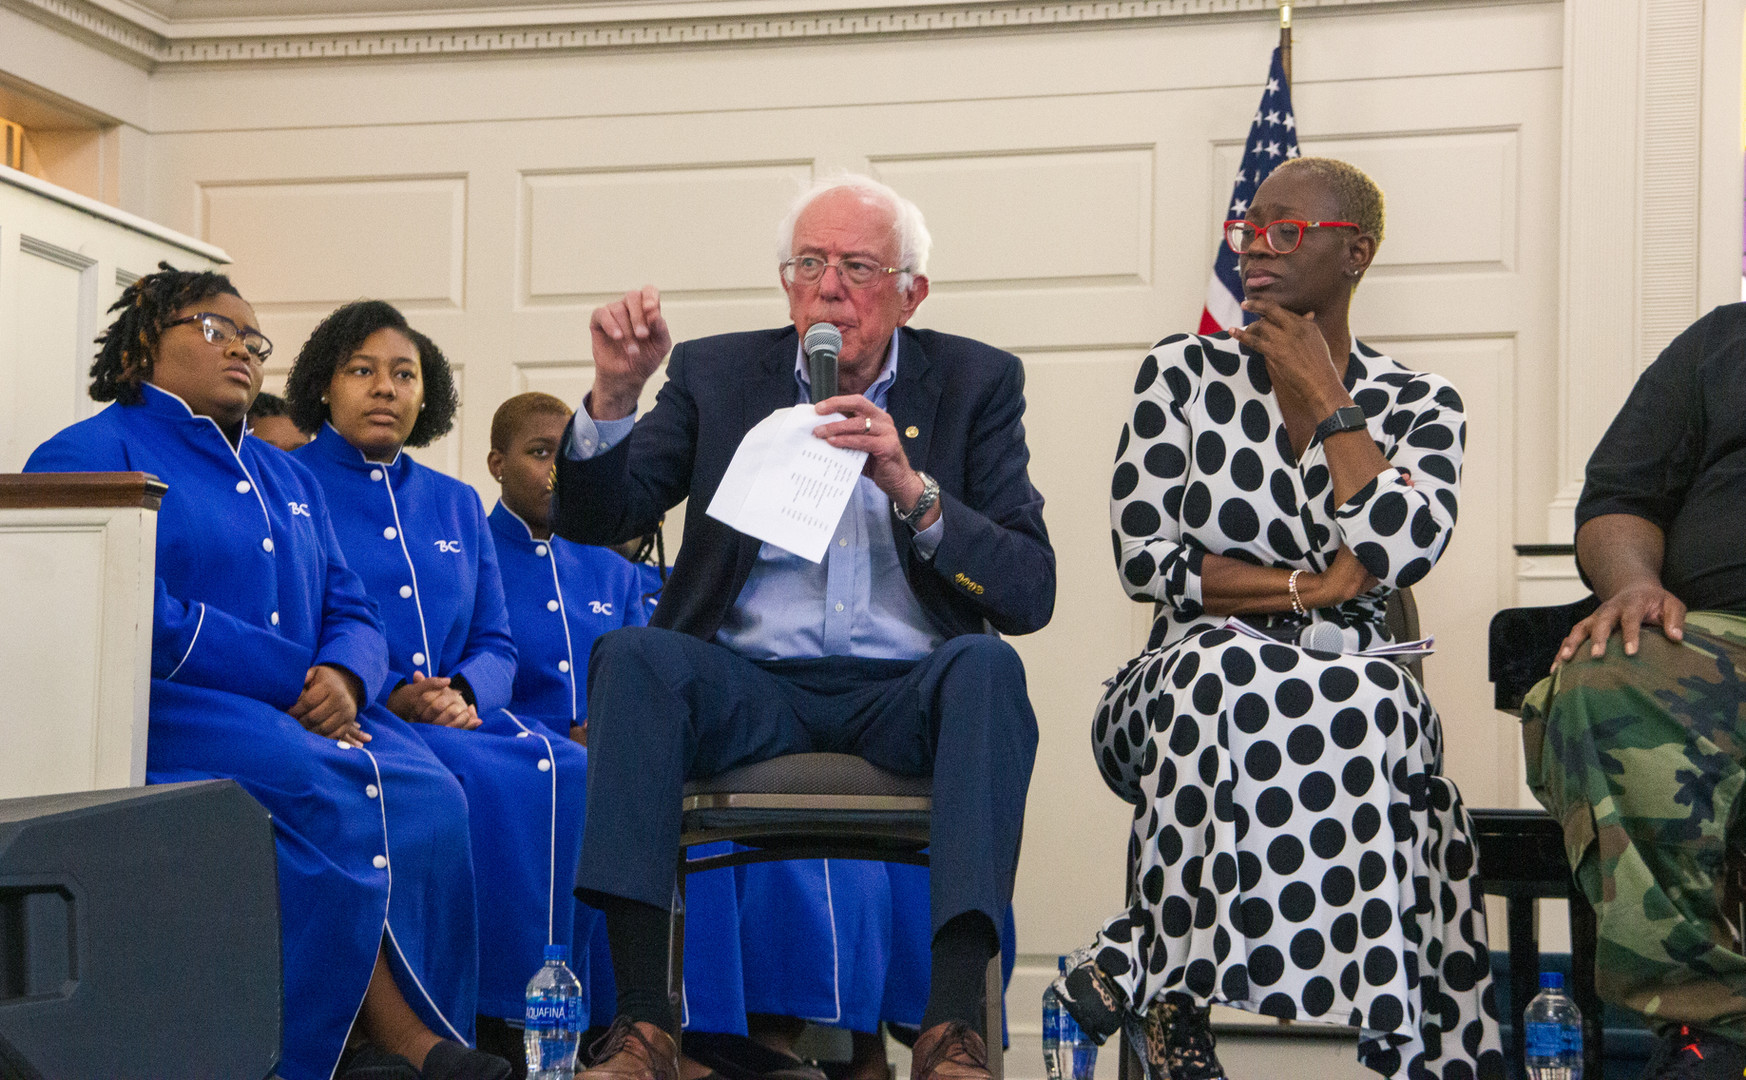 Bernie Sanders talks during panel discussion (Nina Turner was apart of the panel discussion).